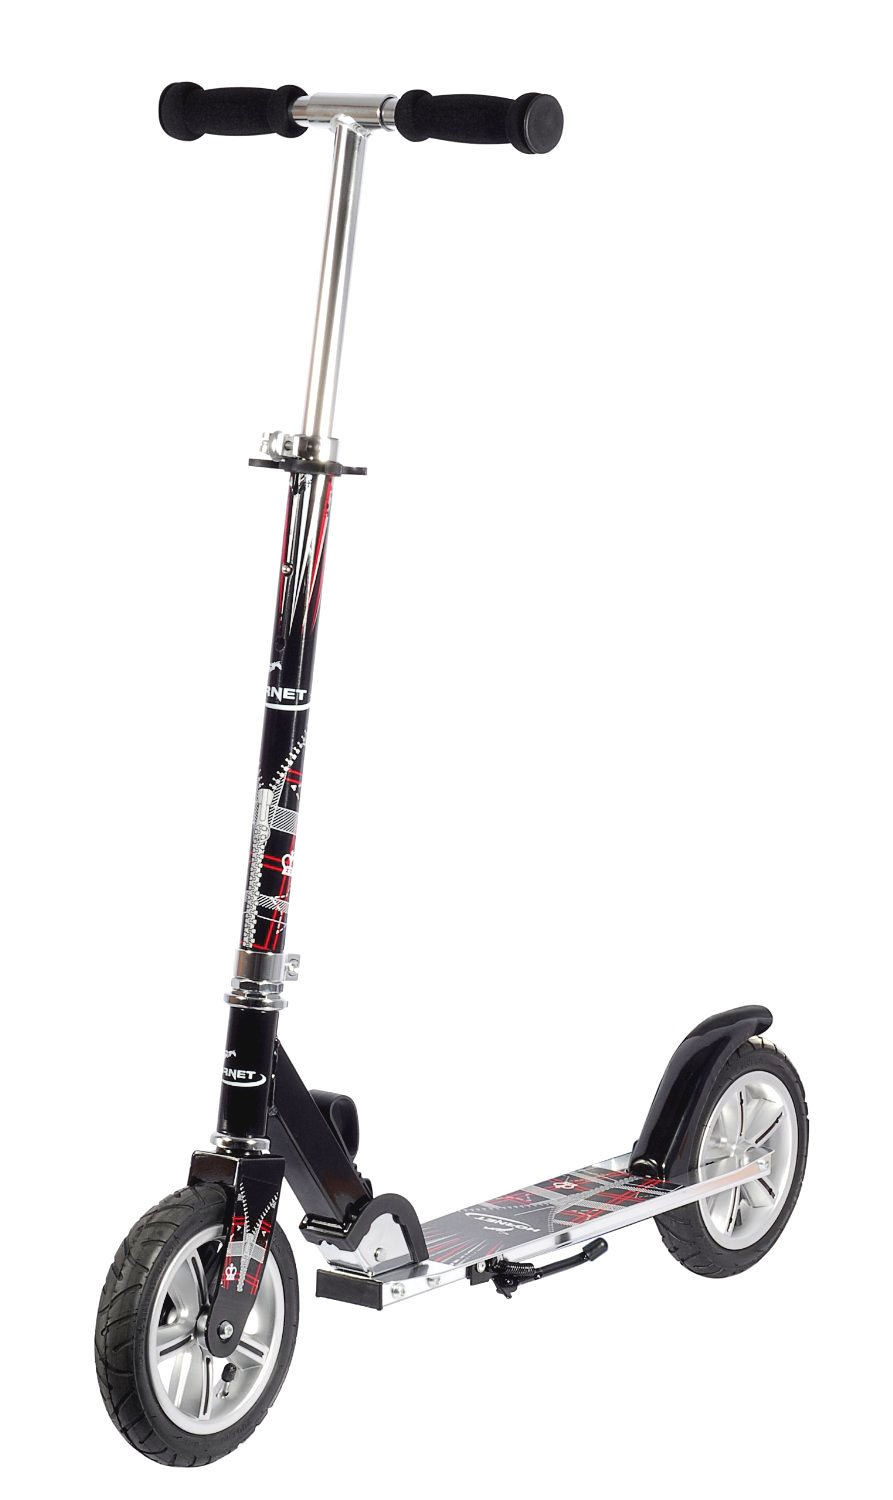 hudora hornet alu scooter big wheel air roller 205mm pneumatic tyres genuine ebay. Black Bedroom Furniture Sets. Home Design Ideas